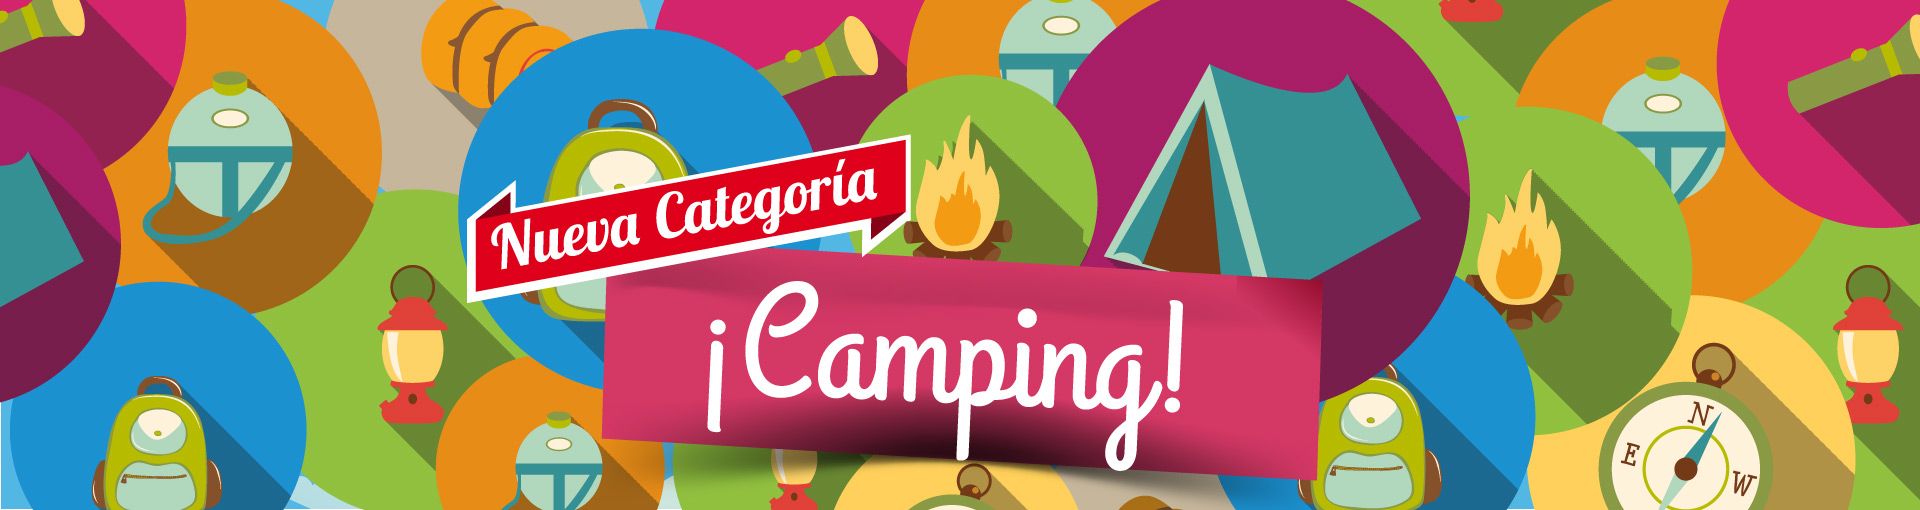 h-banner-camping